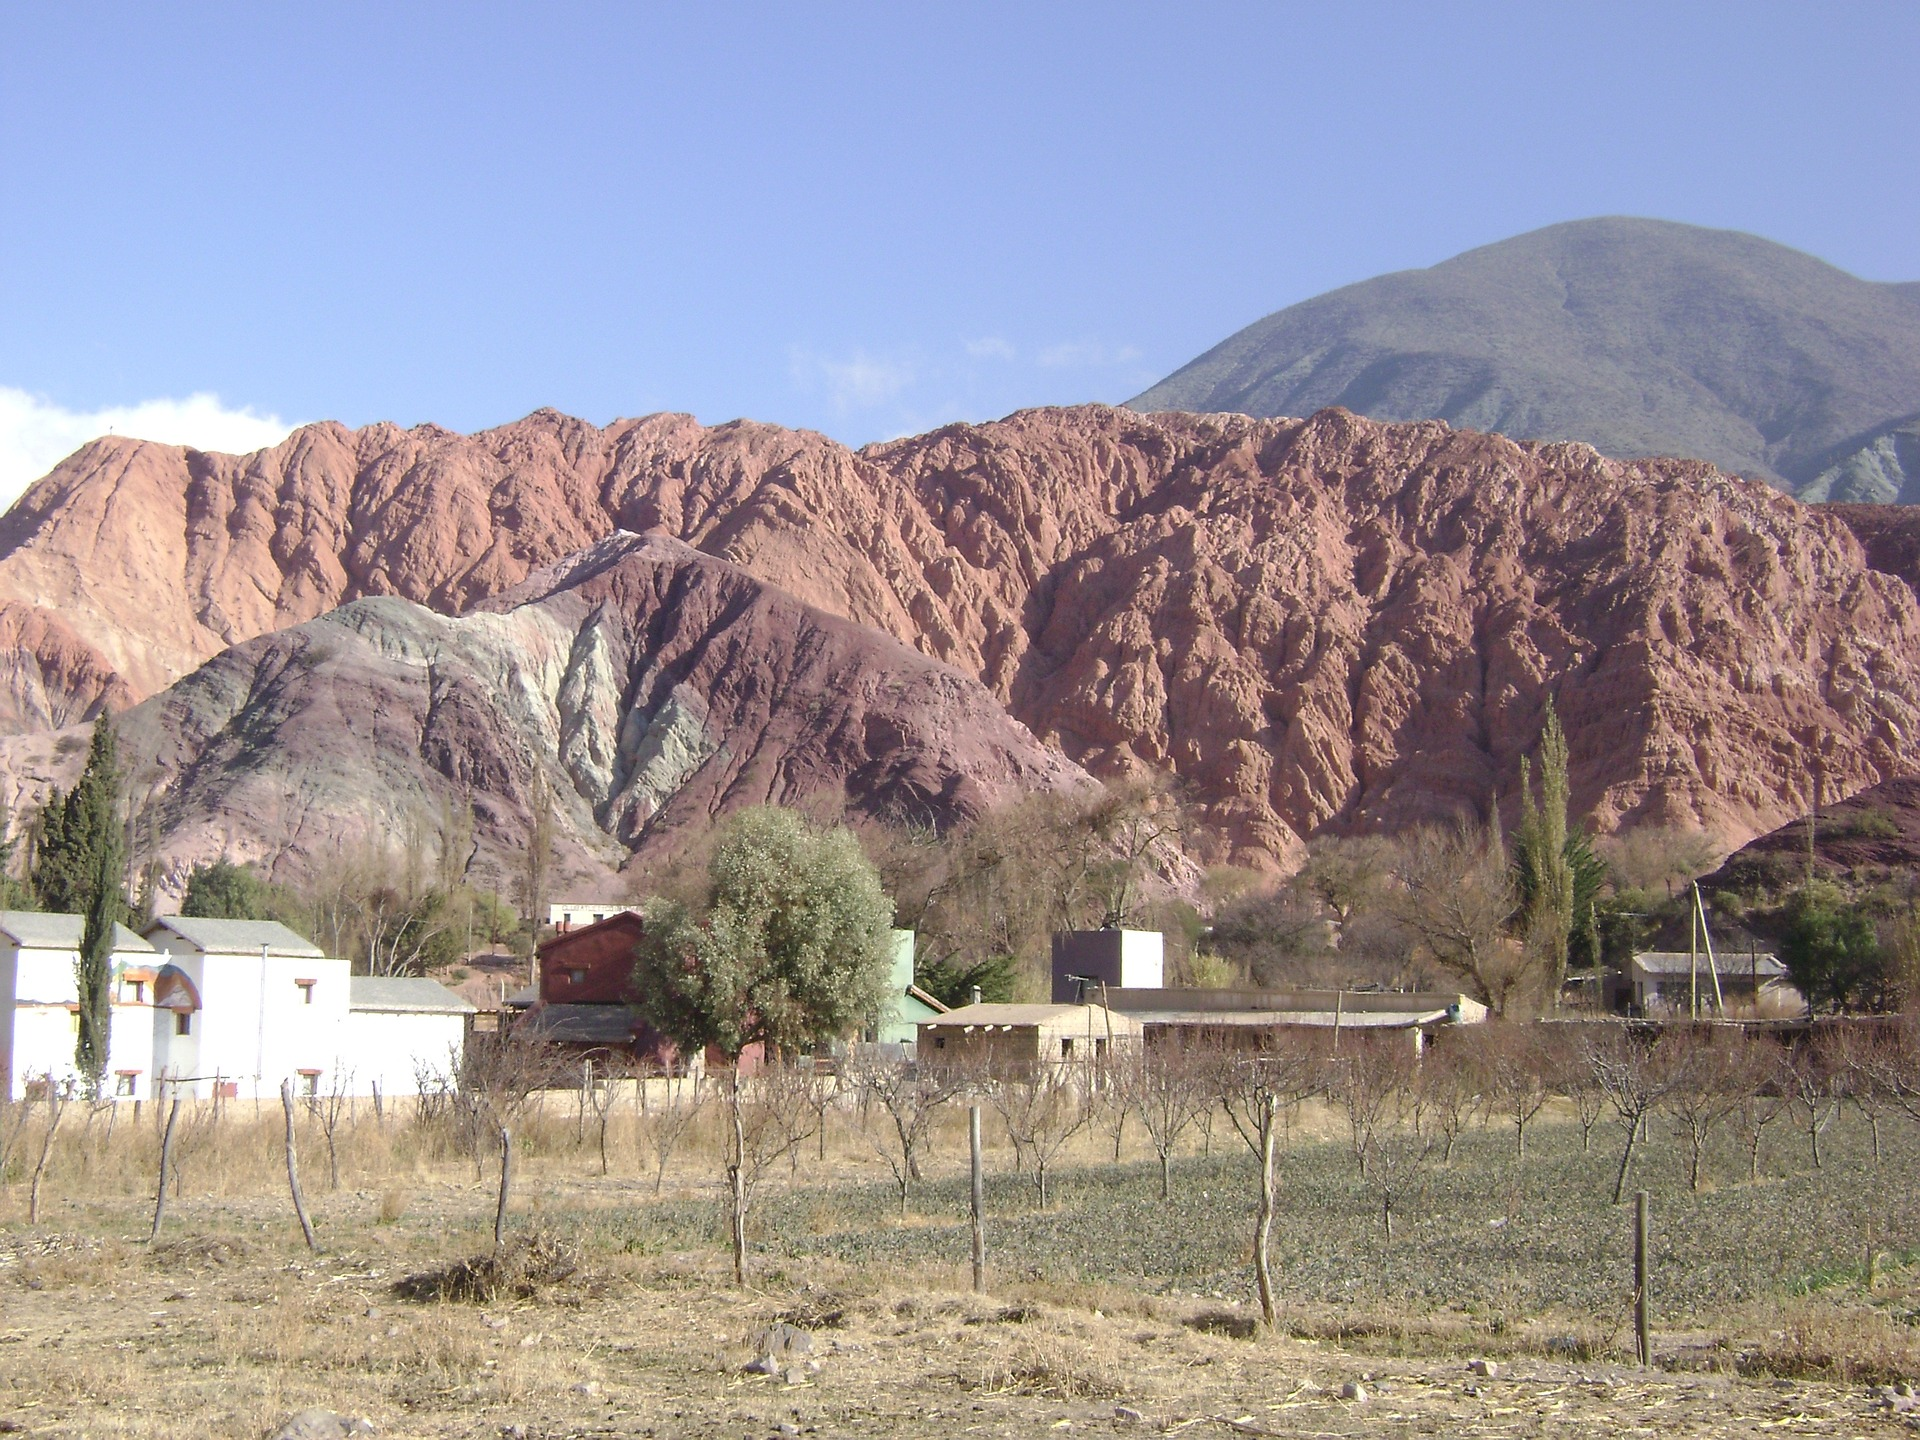 Argentinian authorities are keen for the Jujuy project to hit 600MW in capacity by late 2020 (Credit: Andrea Orozco / Pixabay)